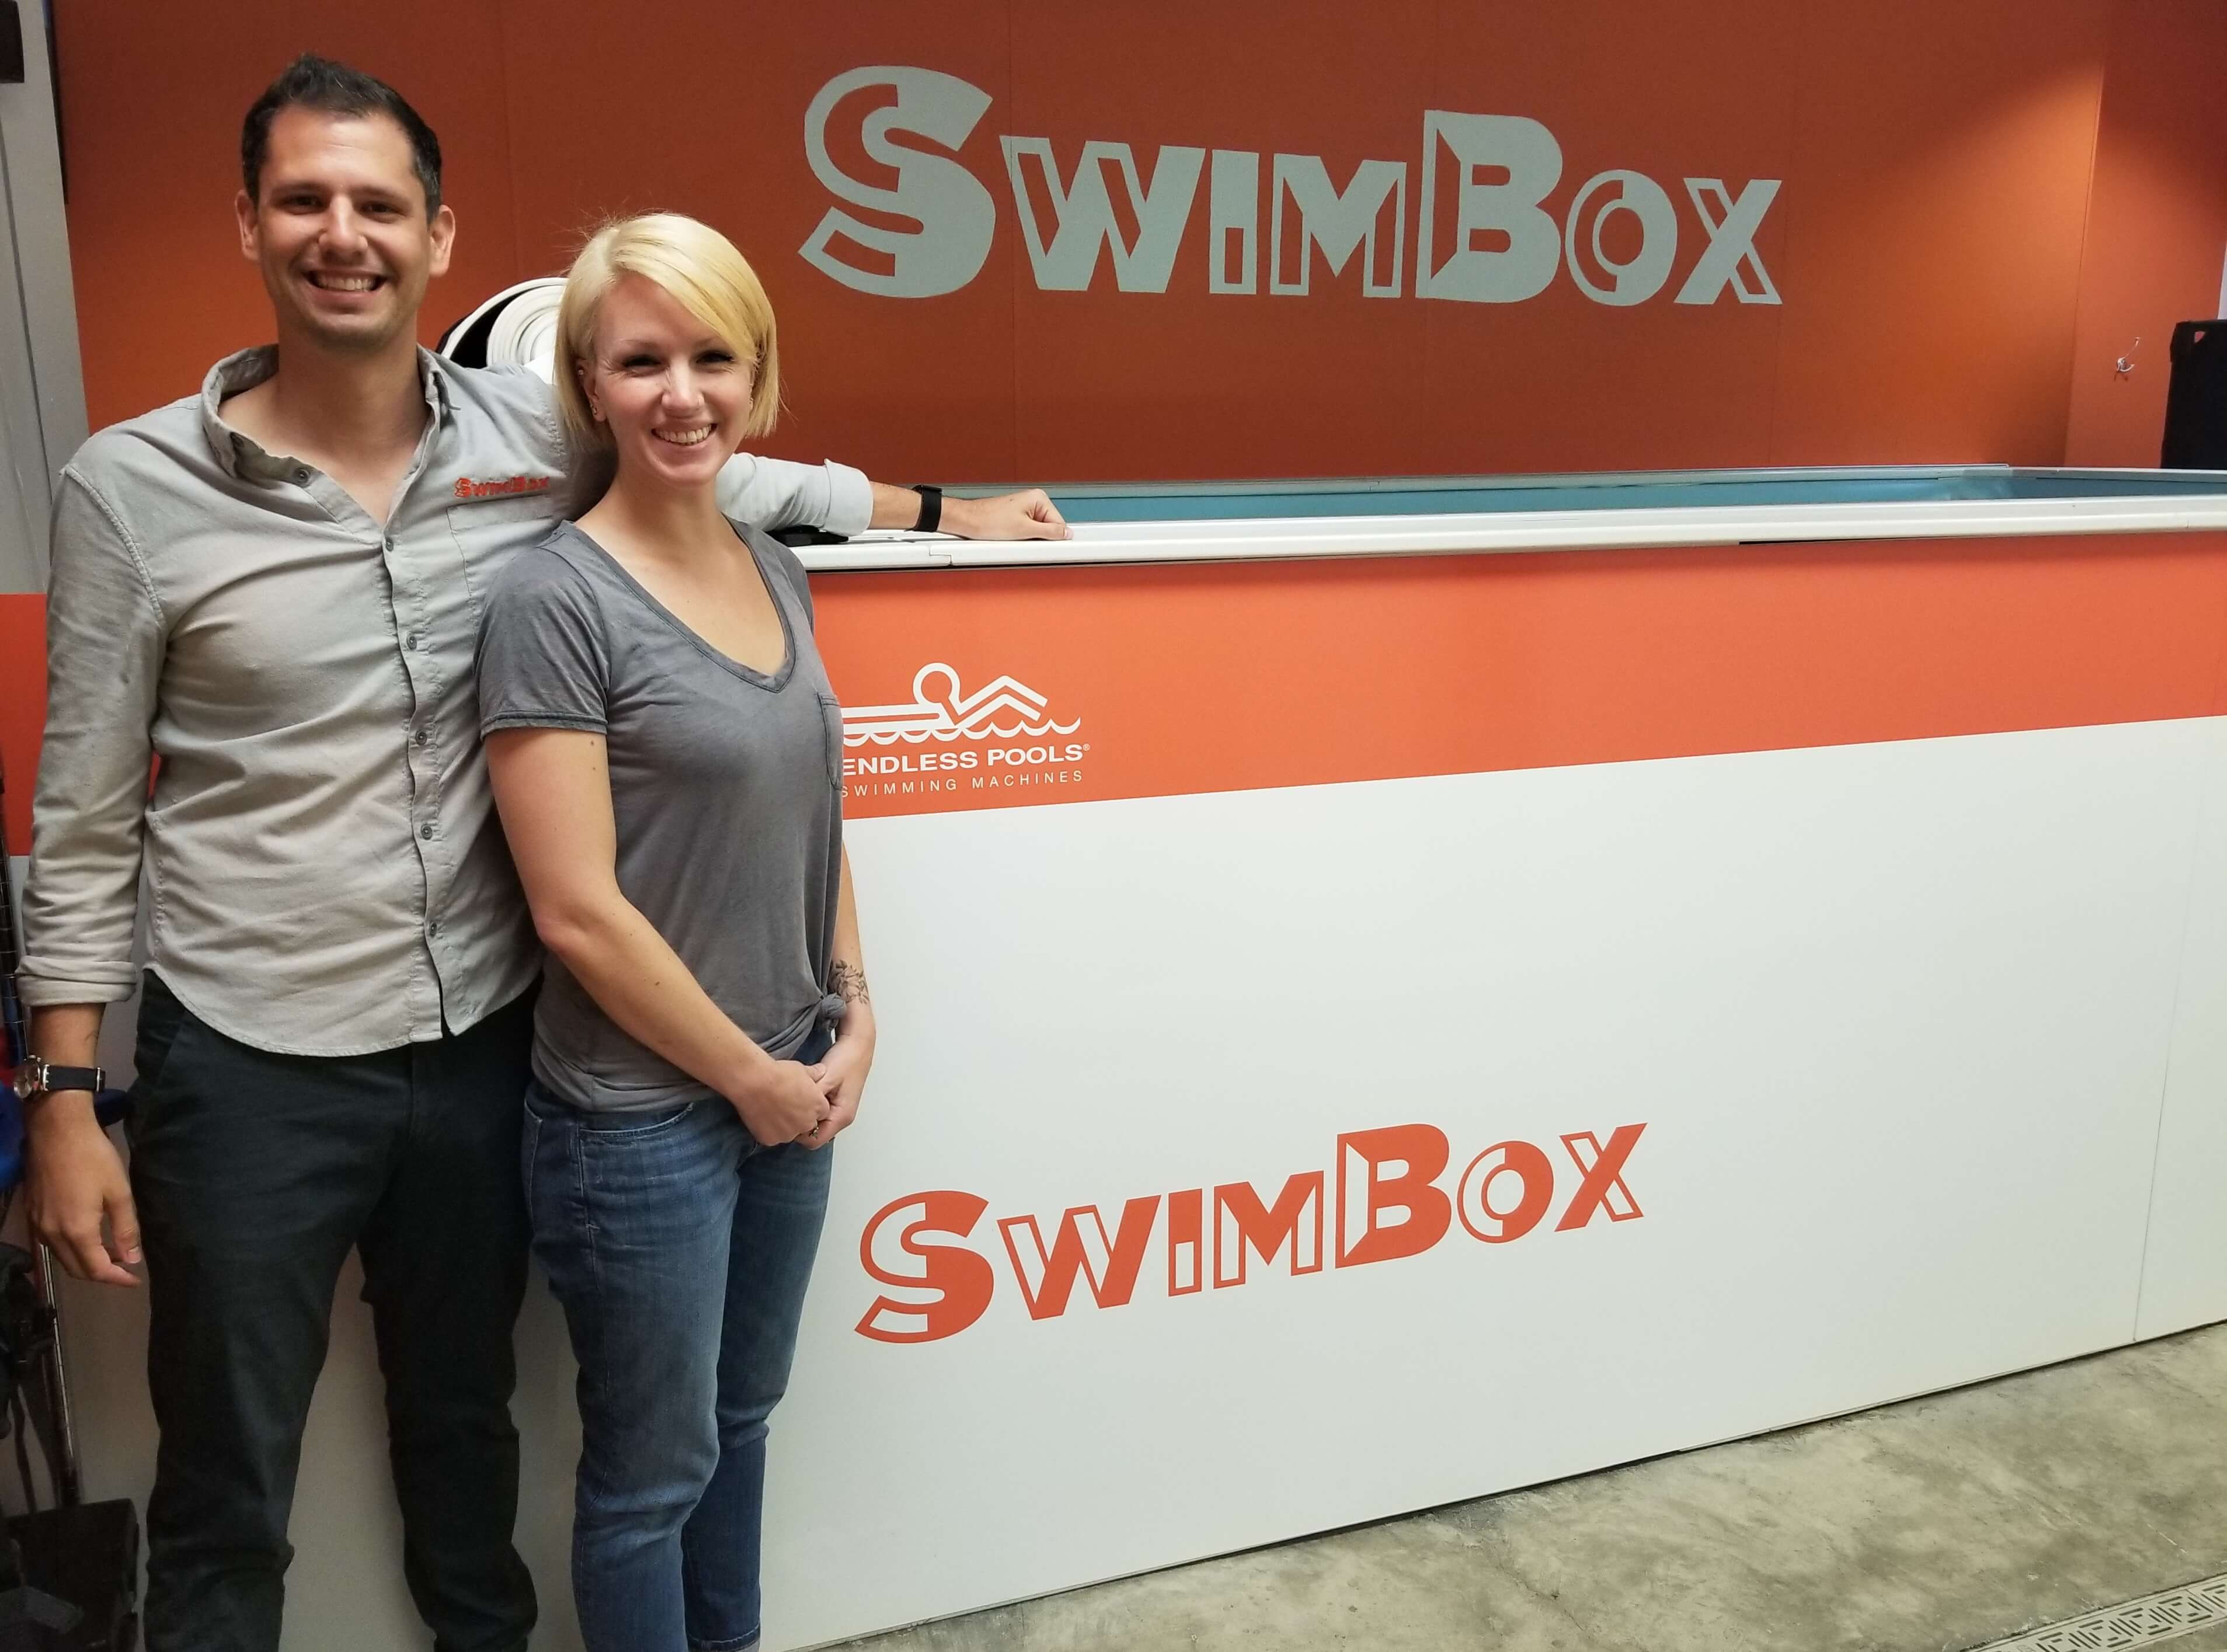 The Endless Pool at SwimBox, with the proud proprietors Dominic and Lissa Latella